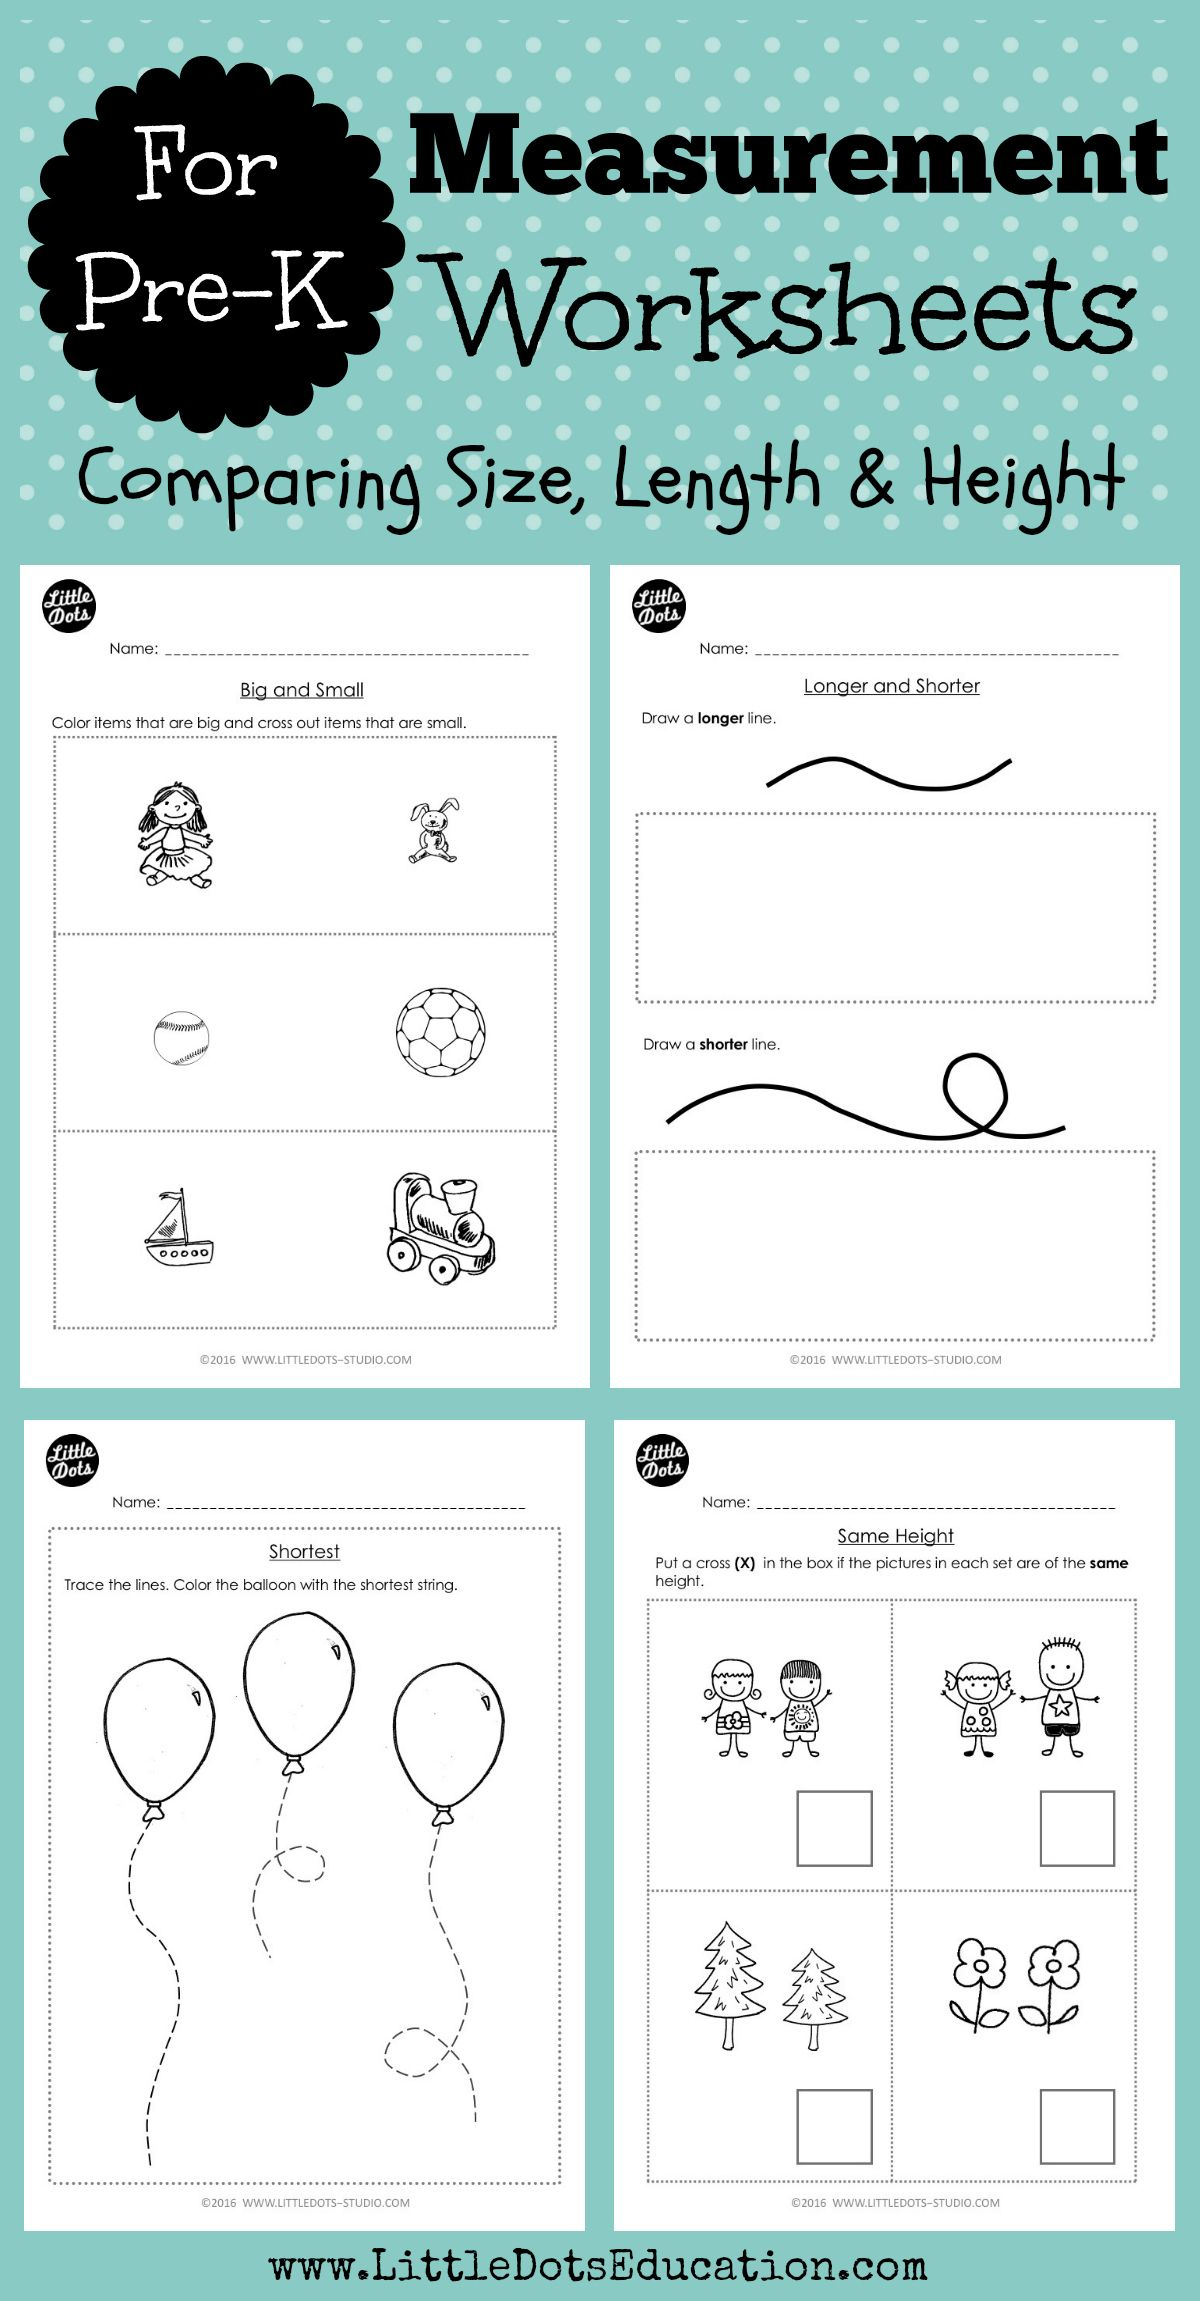 Download Worksheets And Activities To Compare Size Length And Height This Set Helps You Teach